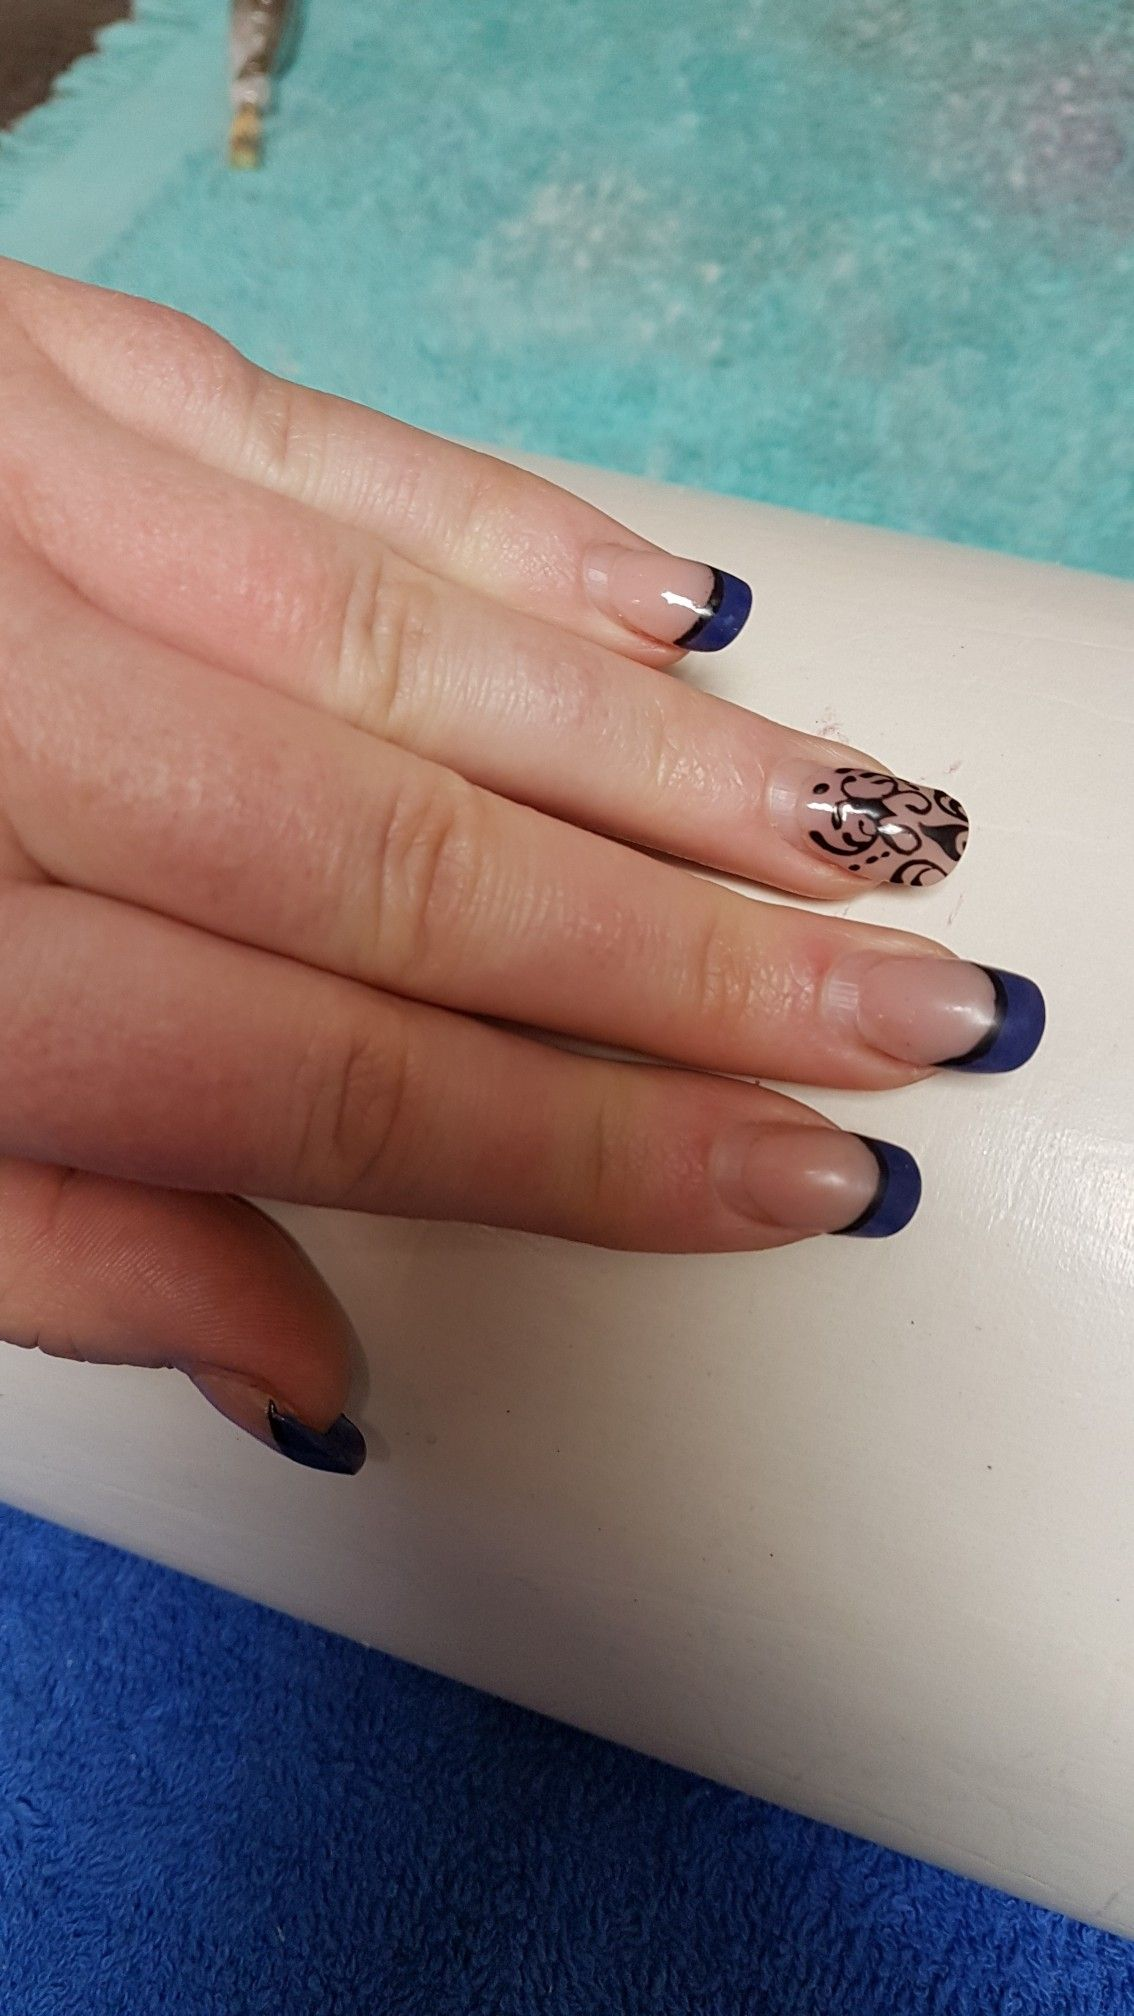 My Acrylic Nails After 4 Weeks Blue French And Black Detail Acrylic Nails Nails Class Ring